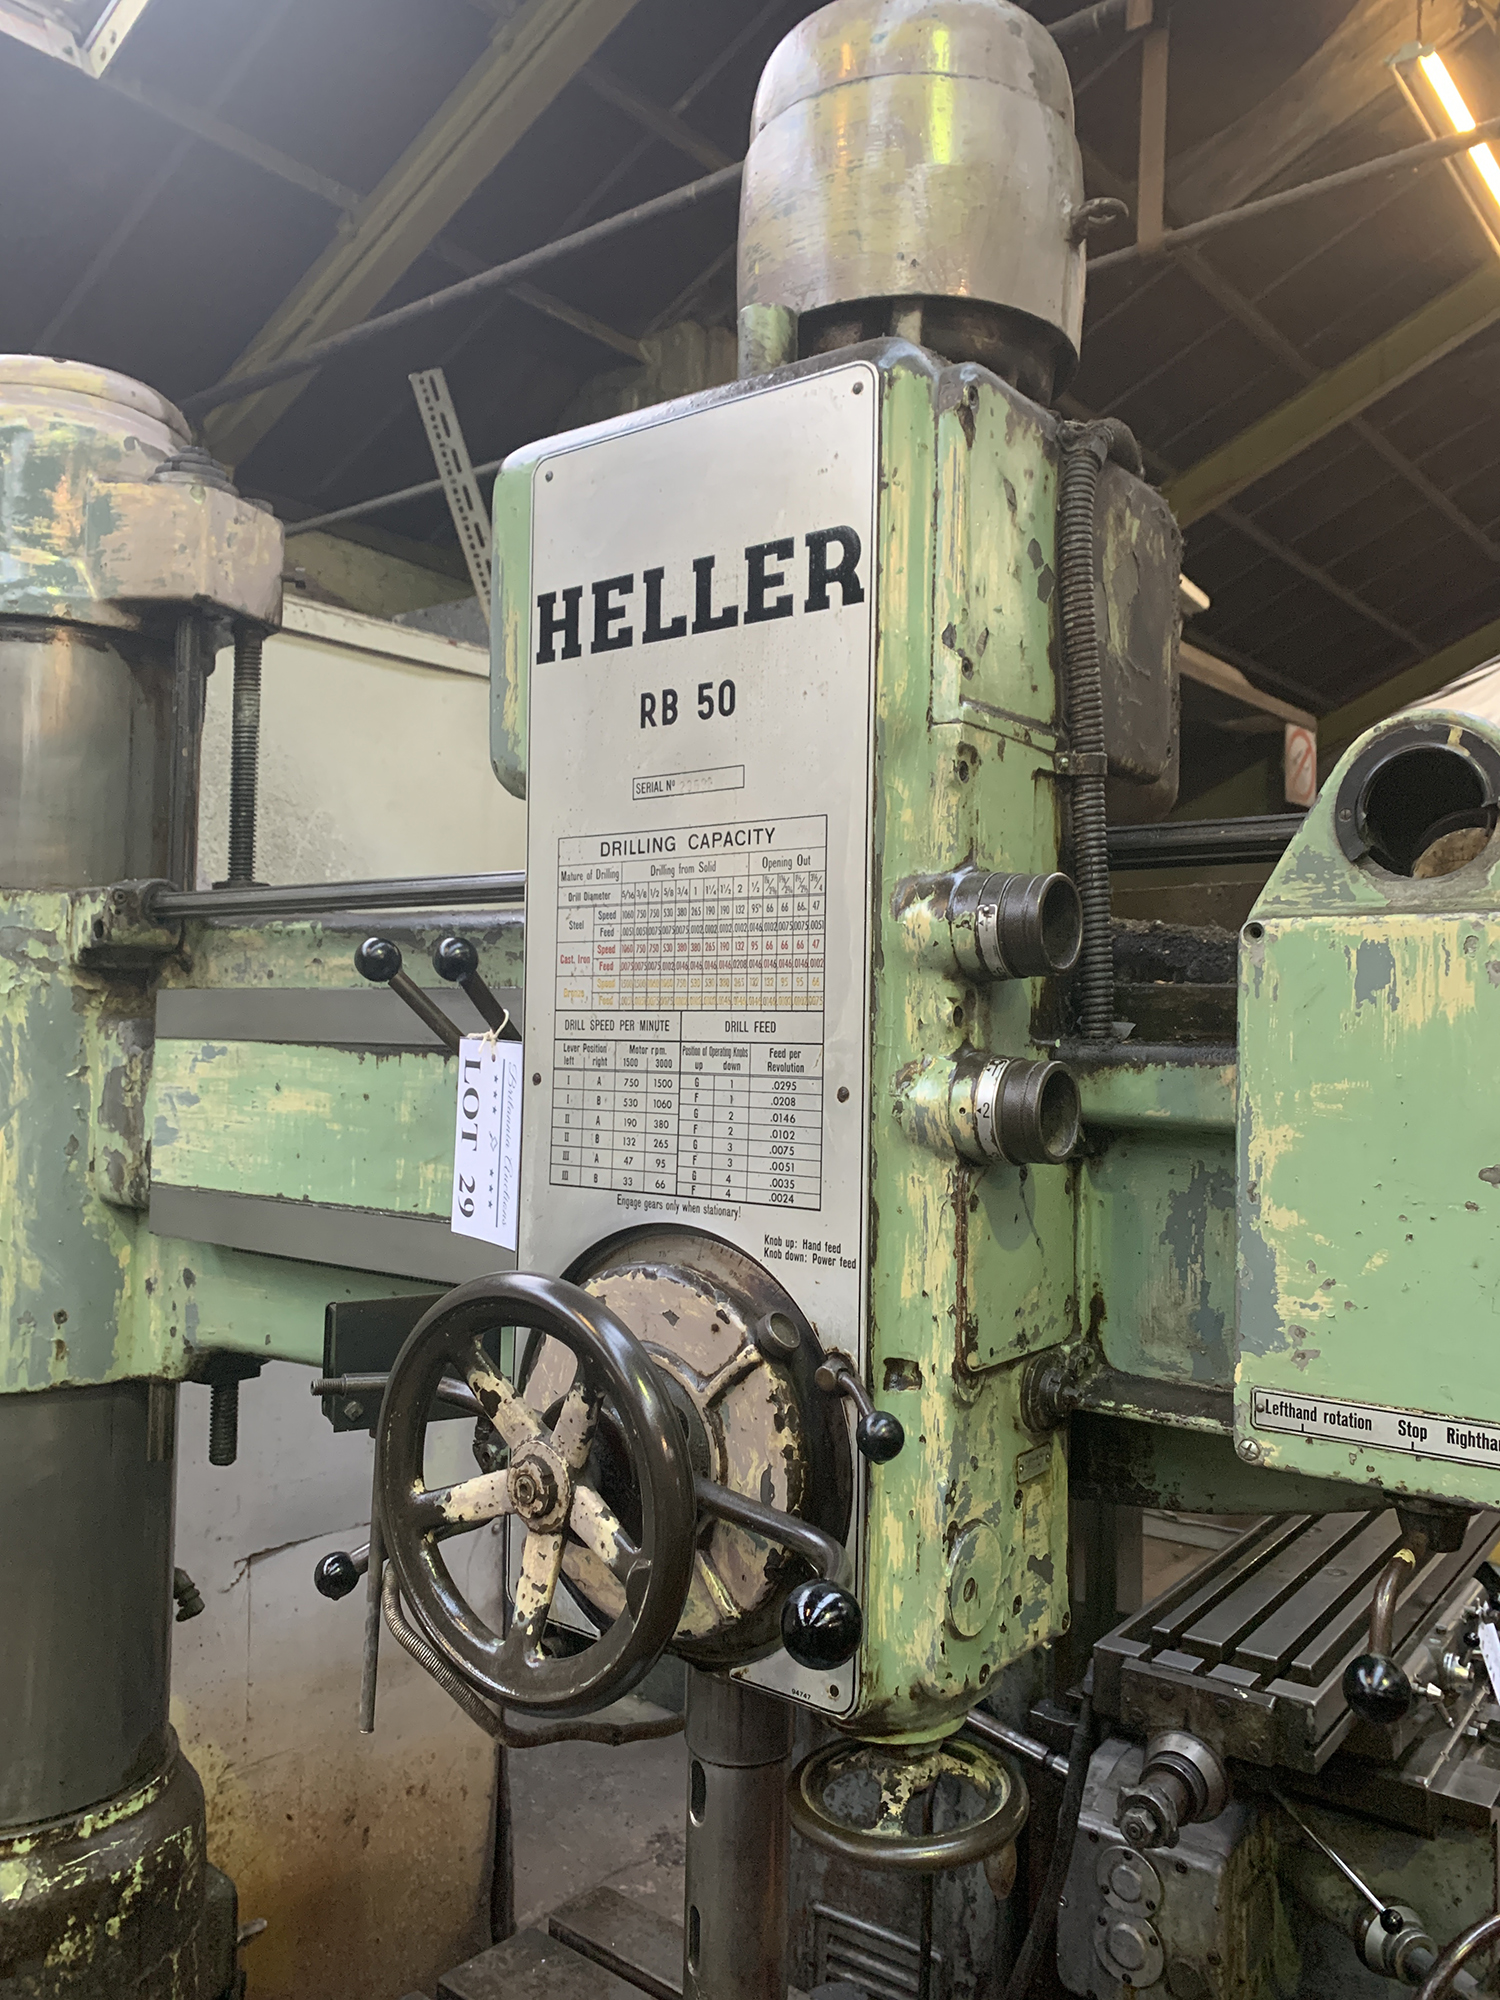 Heller Radial Arm Drill. 48'' Radius of Arm. Box Table Size 1000mm x 1000mm x 550mm. - Image 2 of 4